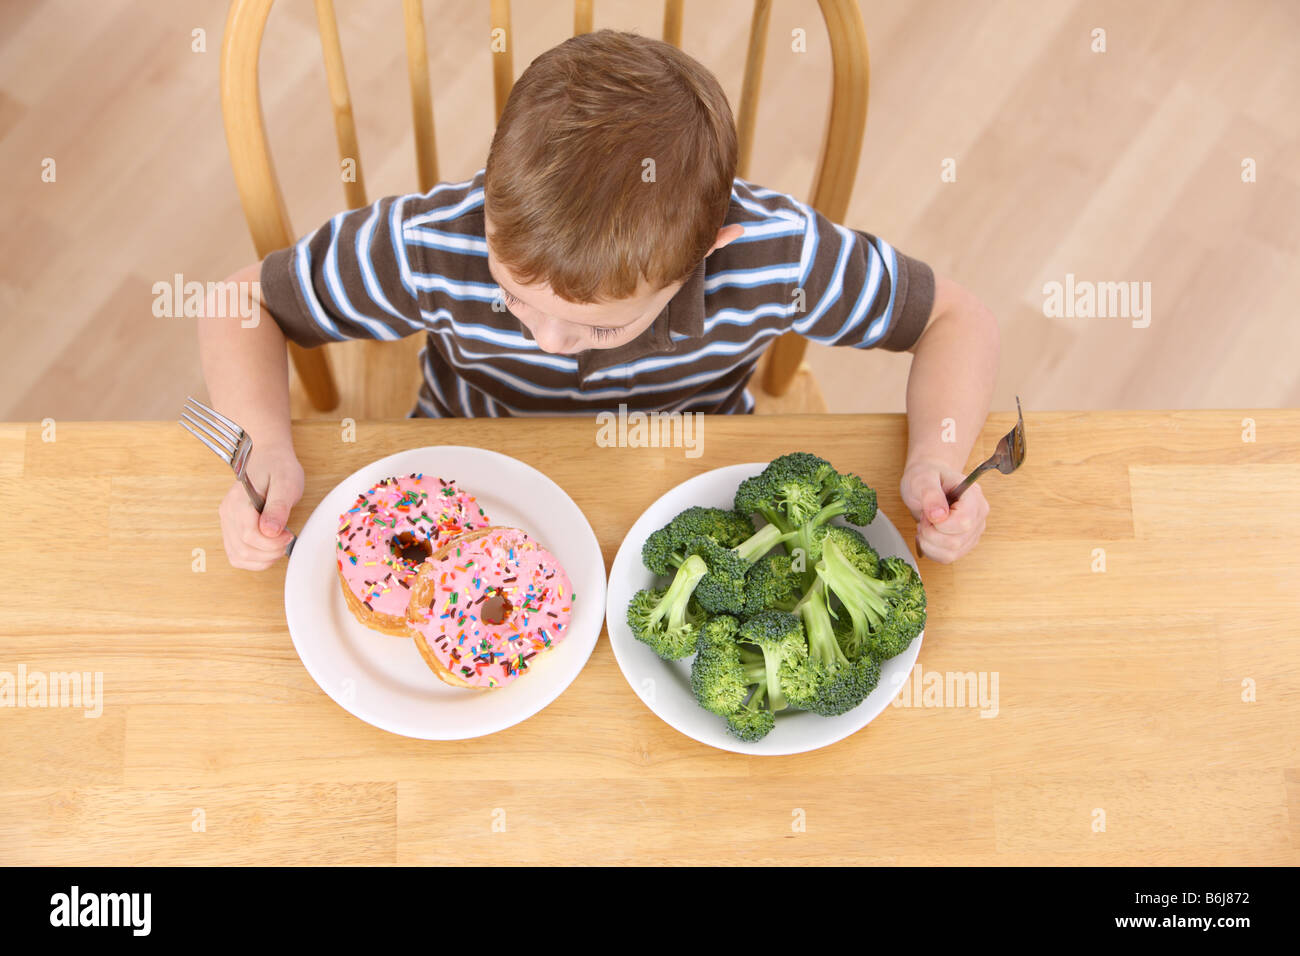 Young boy sitting at table with plates of broccoli and donuts - Stock Image